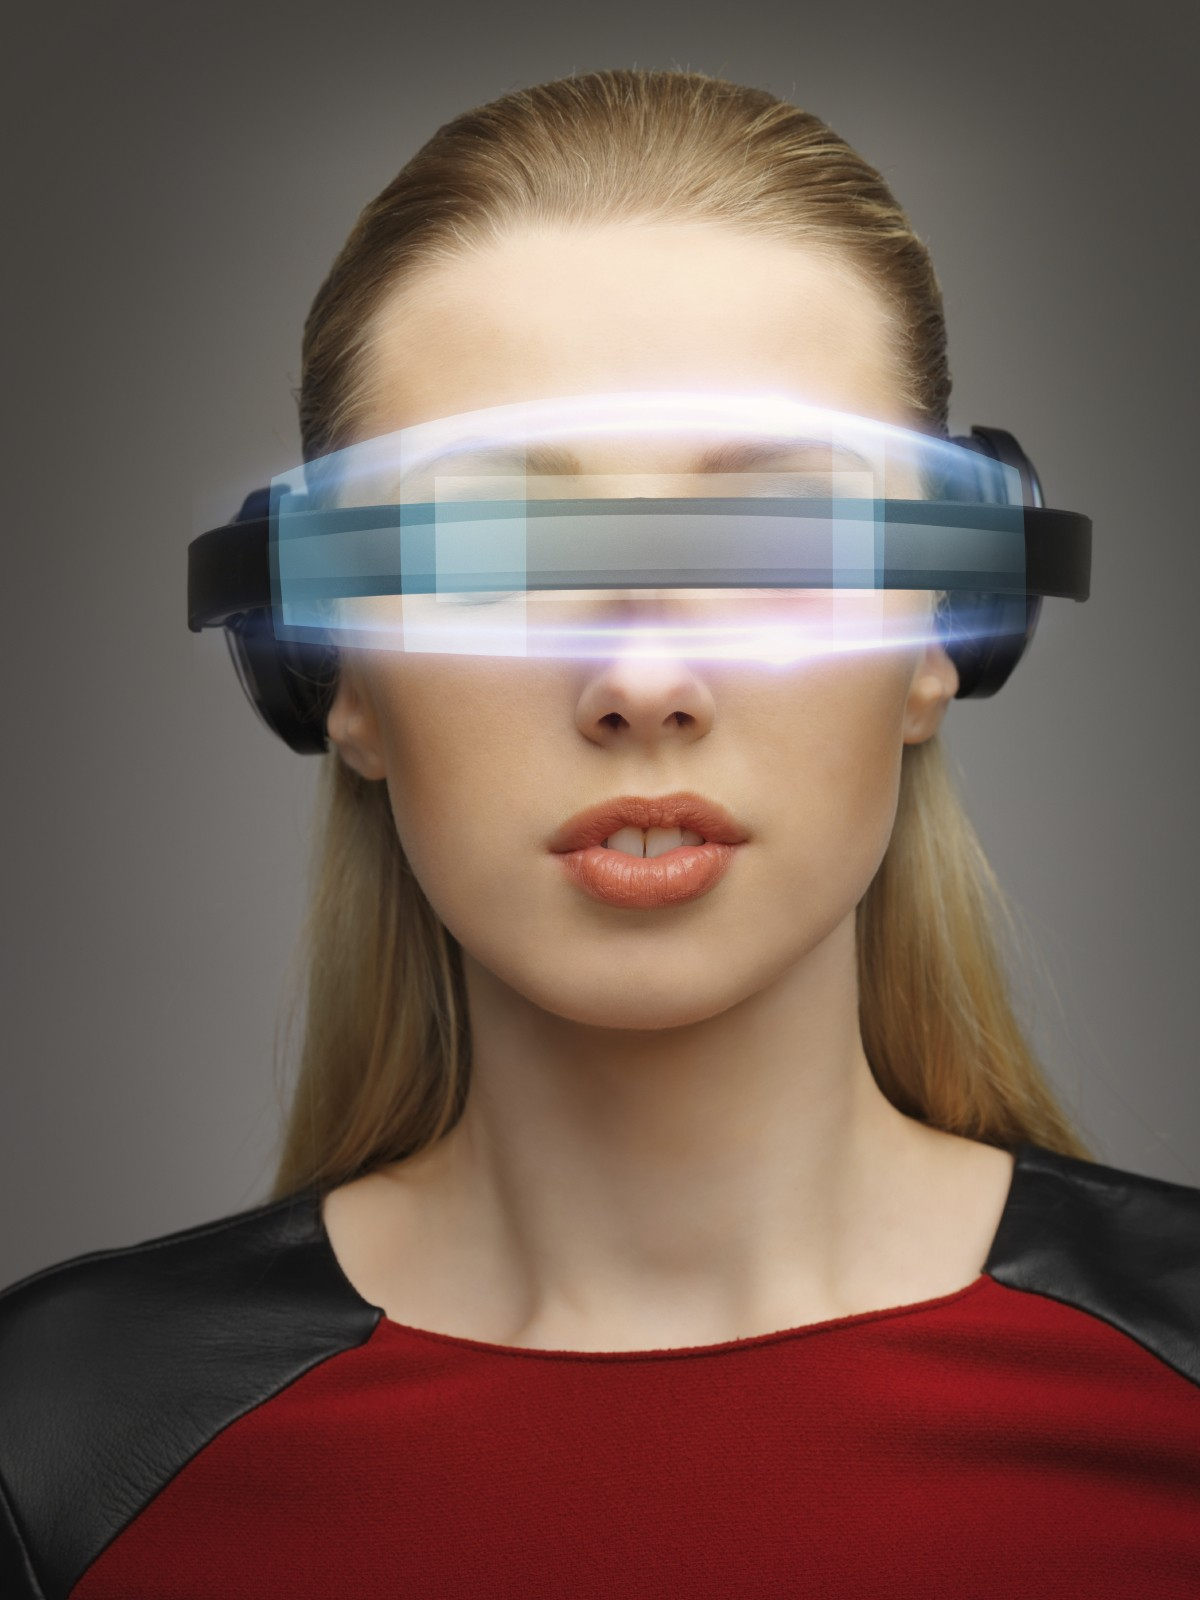 businesswoman with digital glasses